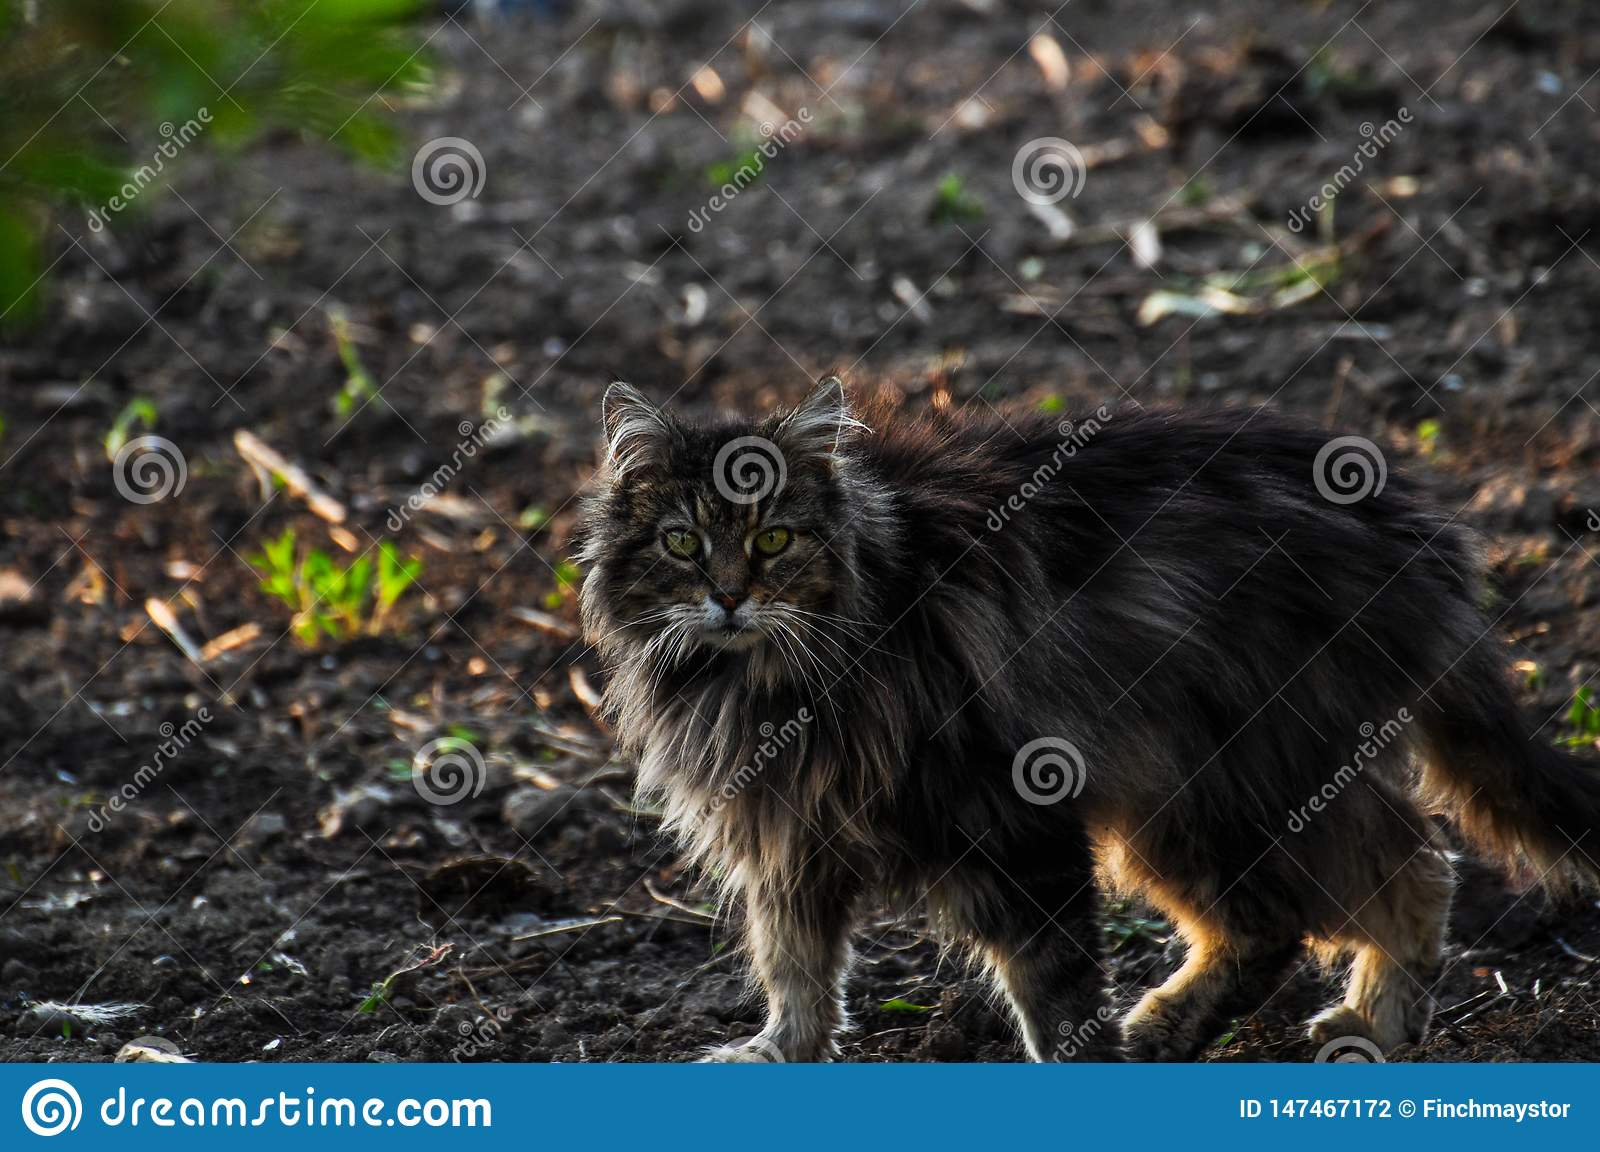 Beautiful gray cat walking on the ground.Gray cat.Domestic animal.Outdoor